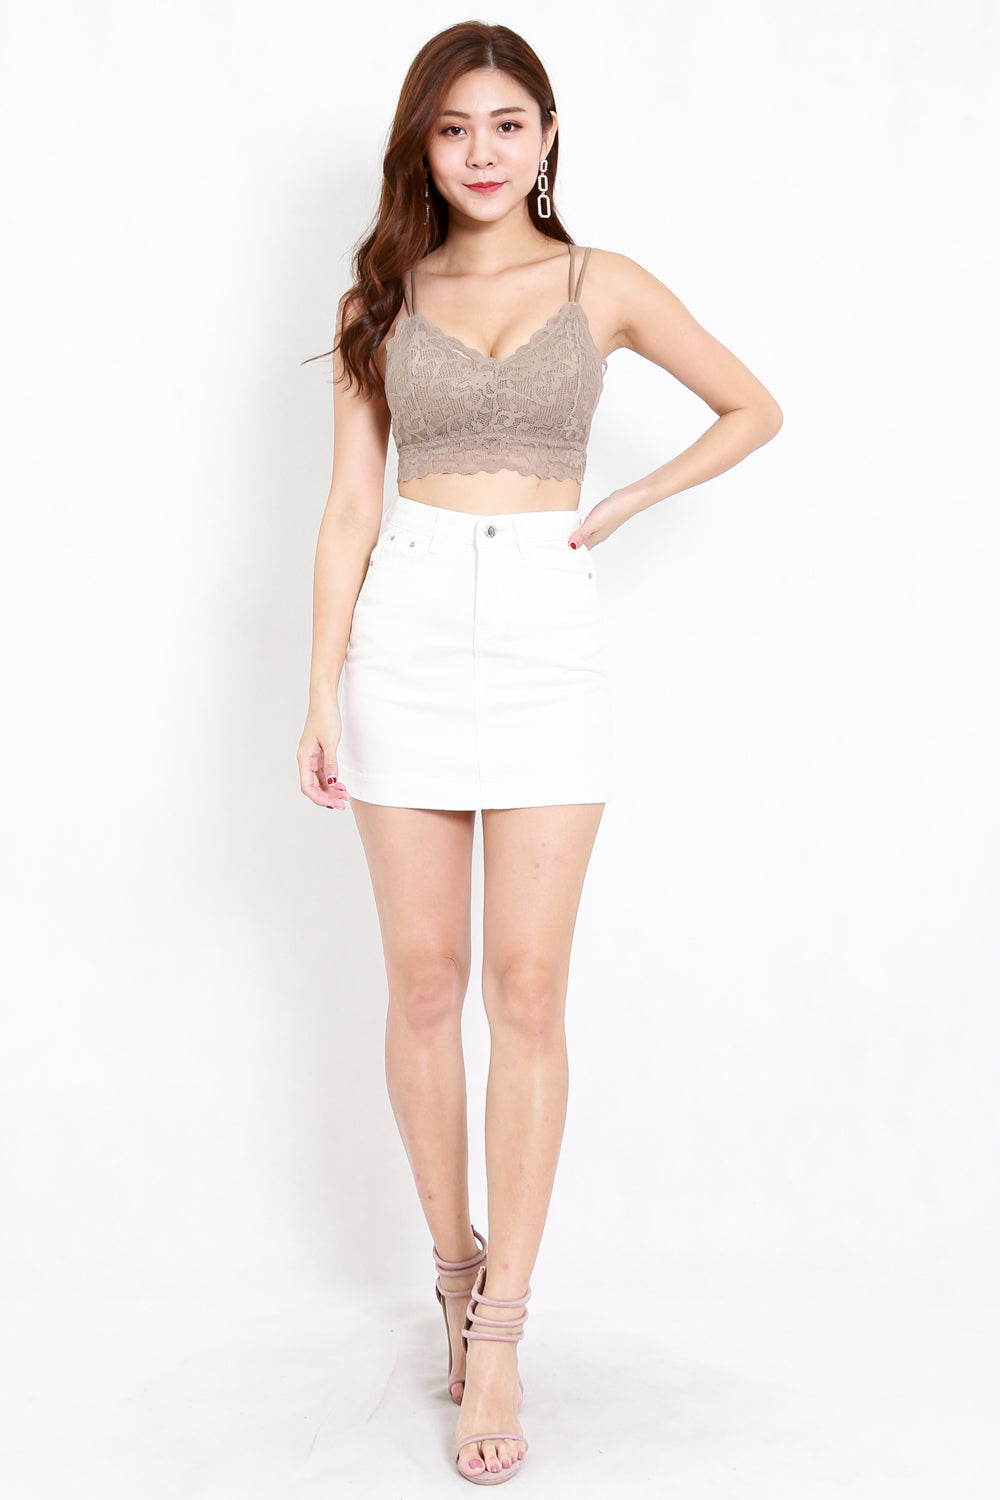 Rikka Lace Bralet (Taupe) *Push Up Effect*